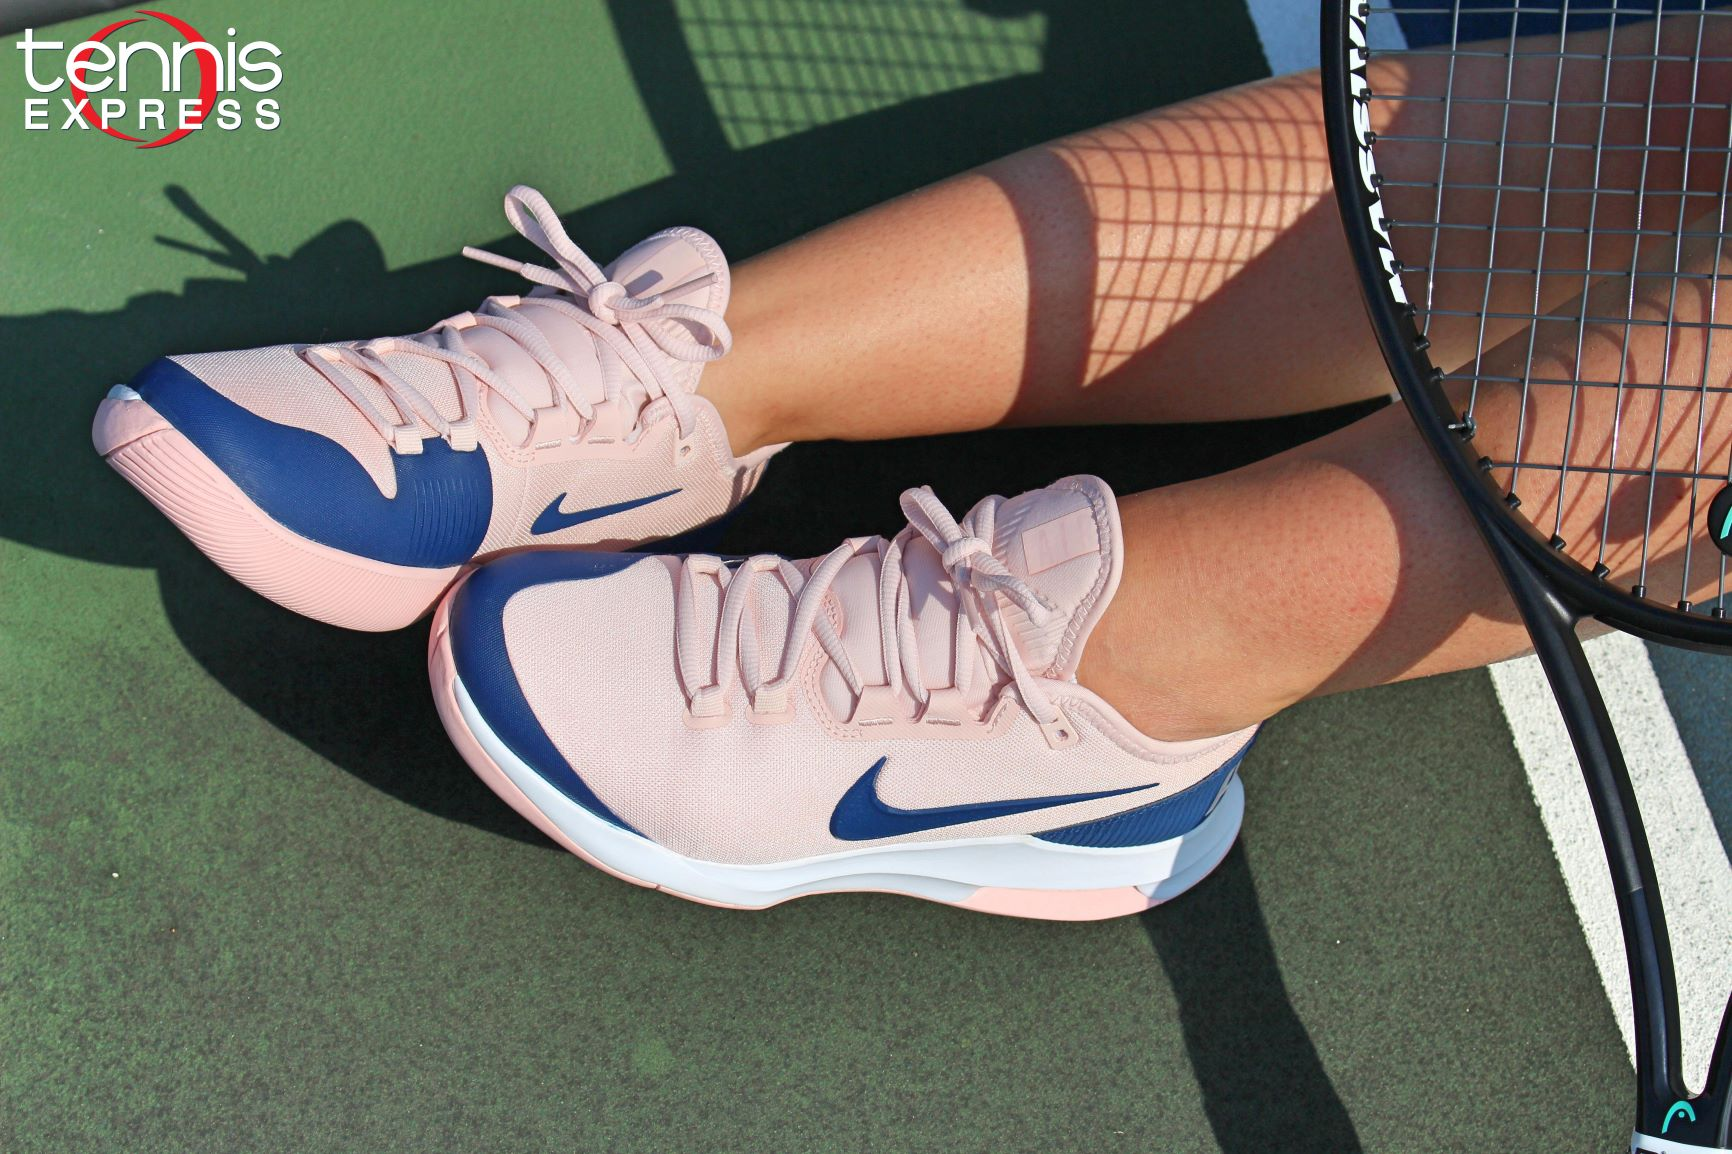 Tennis Shoes 101: Everything You Need to Know